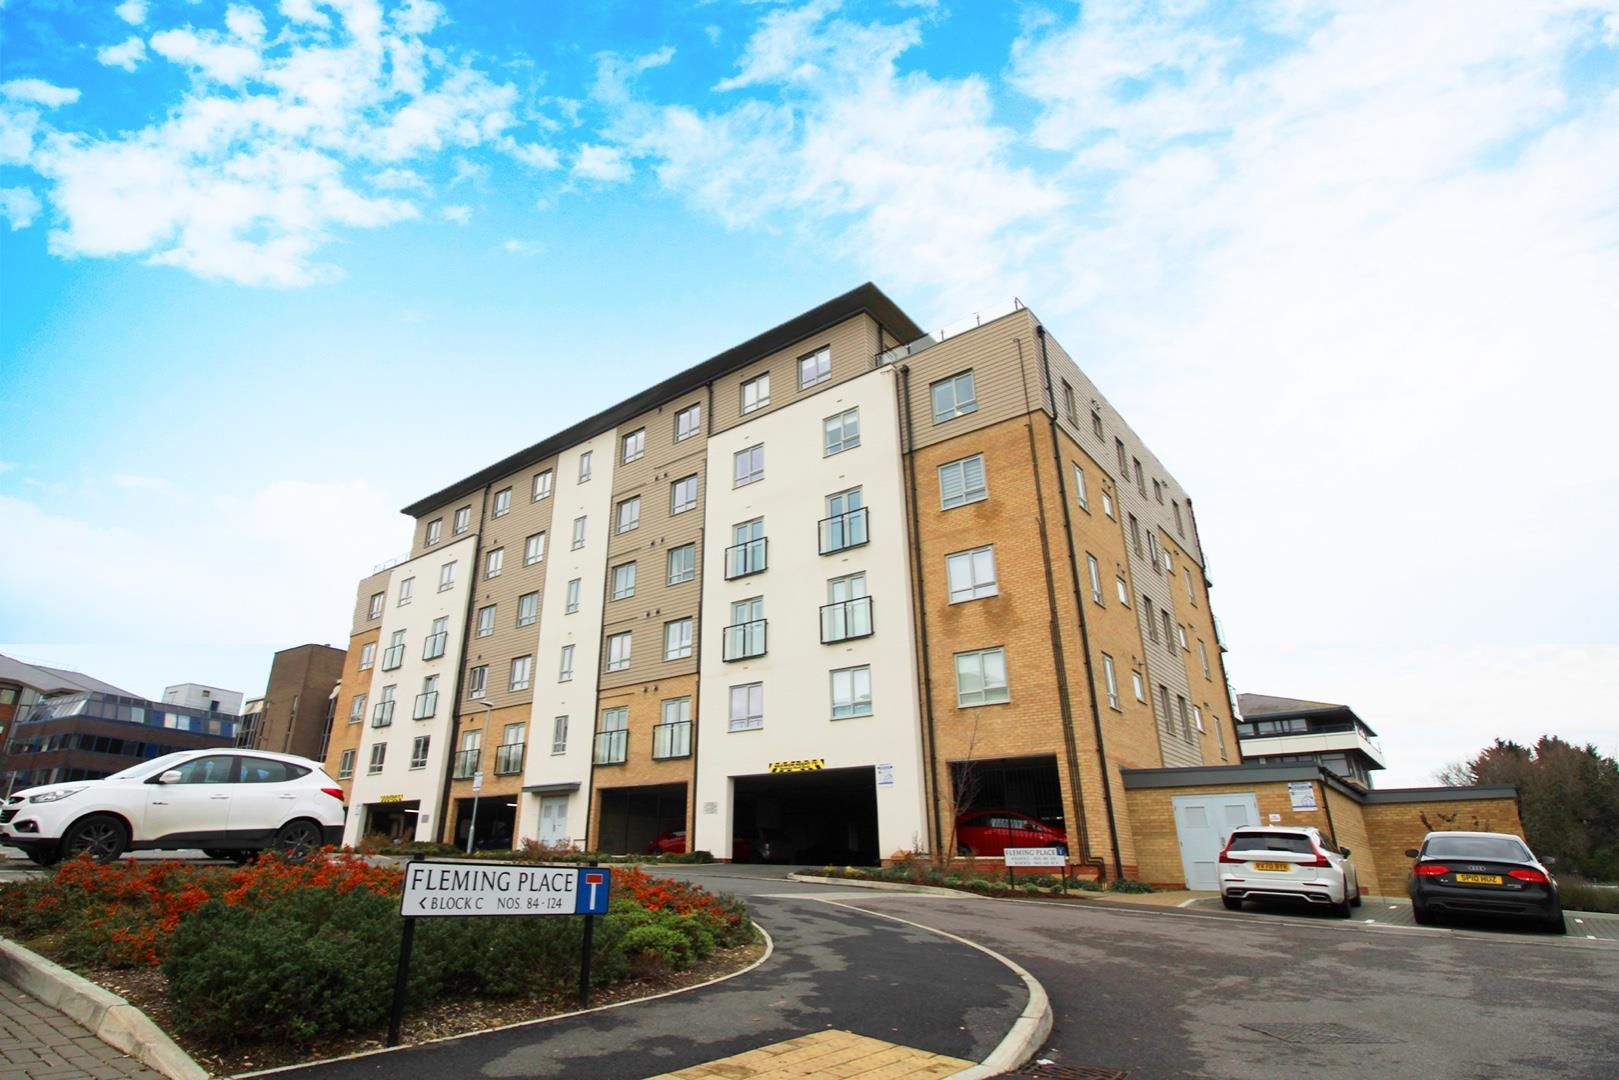 1 bed apartment for sale, RG12